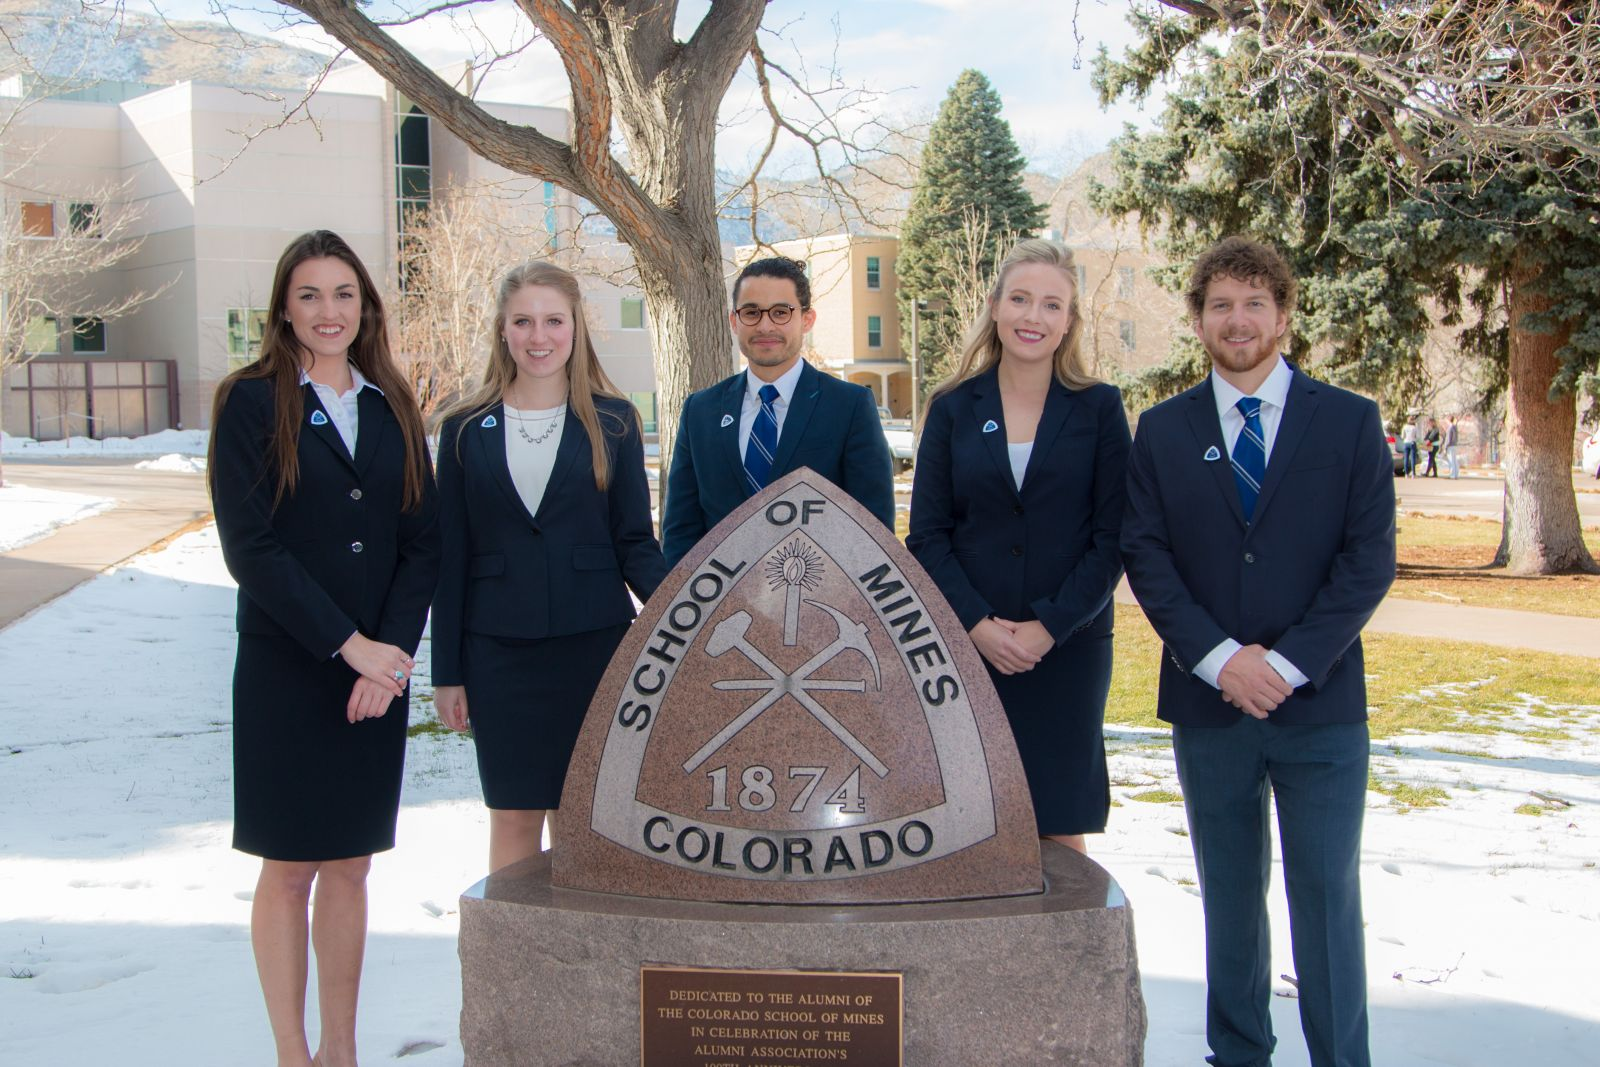 ... their win at the Rocky Mountain Regionals on March 4, 2017 against 9 other teams! They will go on to Houston to complete against the rest of the world!